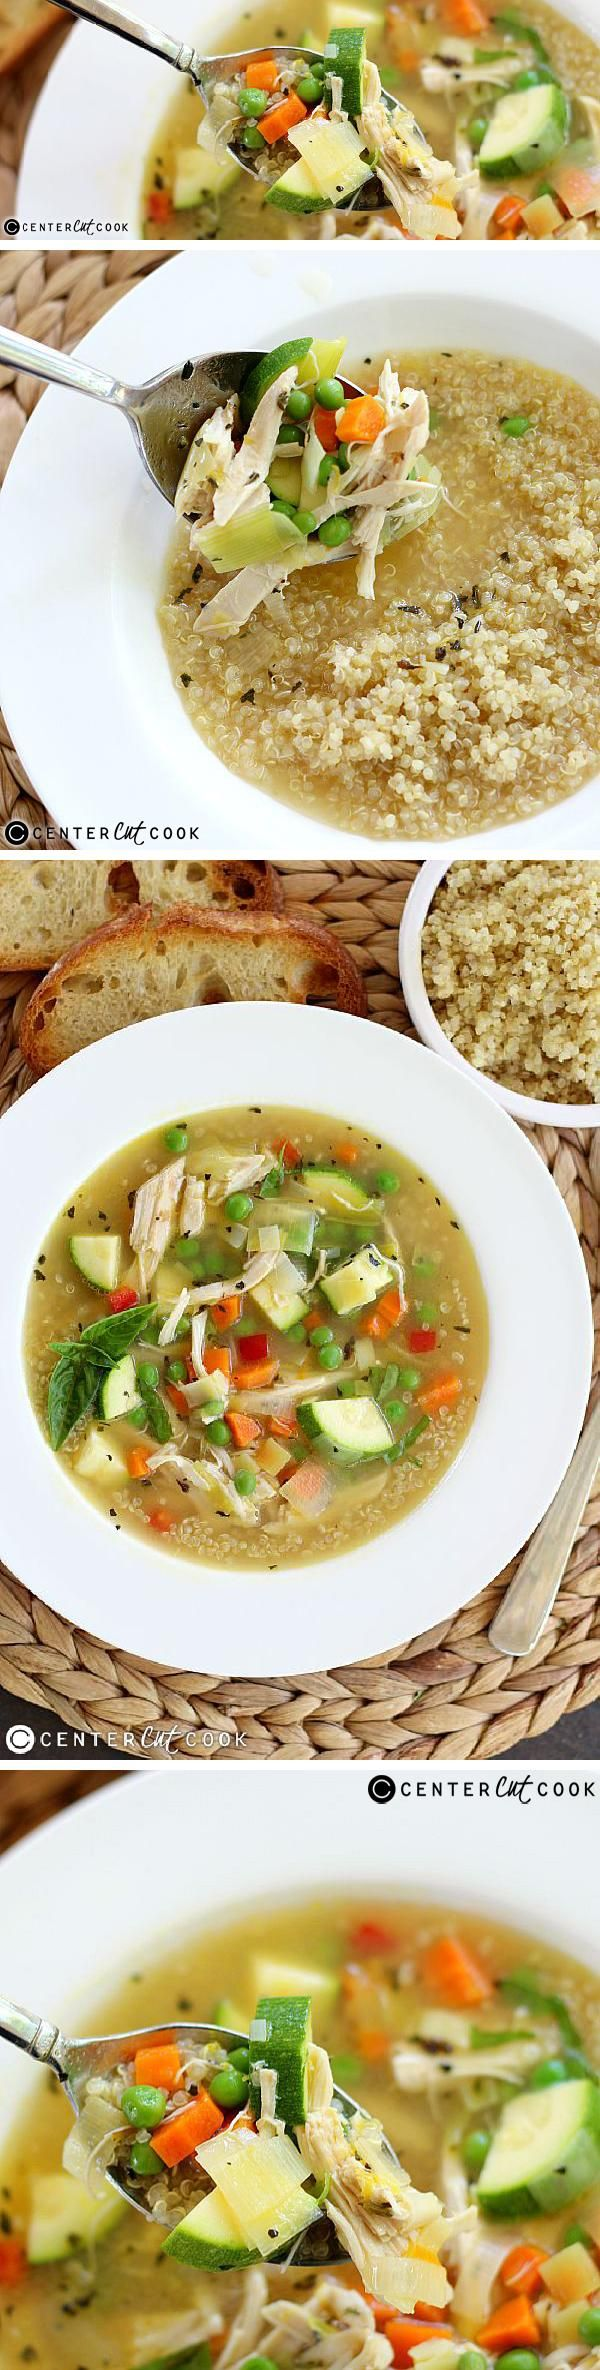 CHICKEN and QUINOA SOUP combines fresh vegetables, quinoa and a splash of lemon for a comforting, satisfying soup that's ready in 30 minutes! A delicious gluten-free alternative to classic chicken with rice or chicken noodle soup.